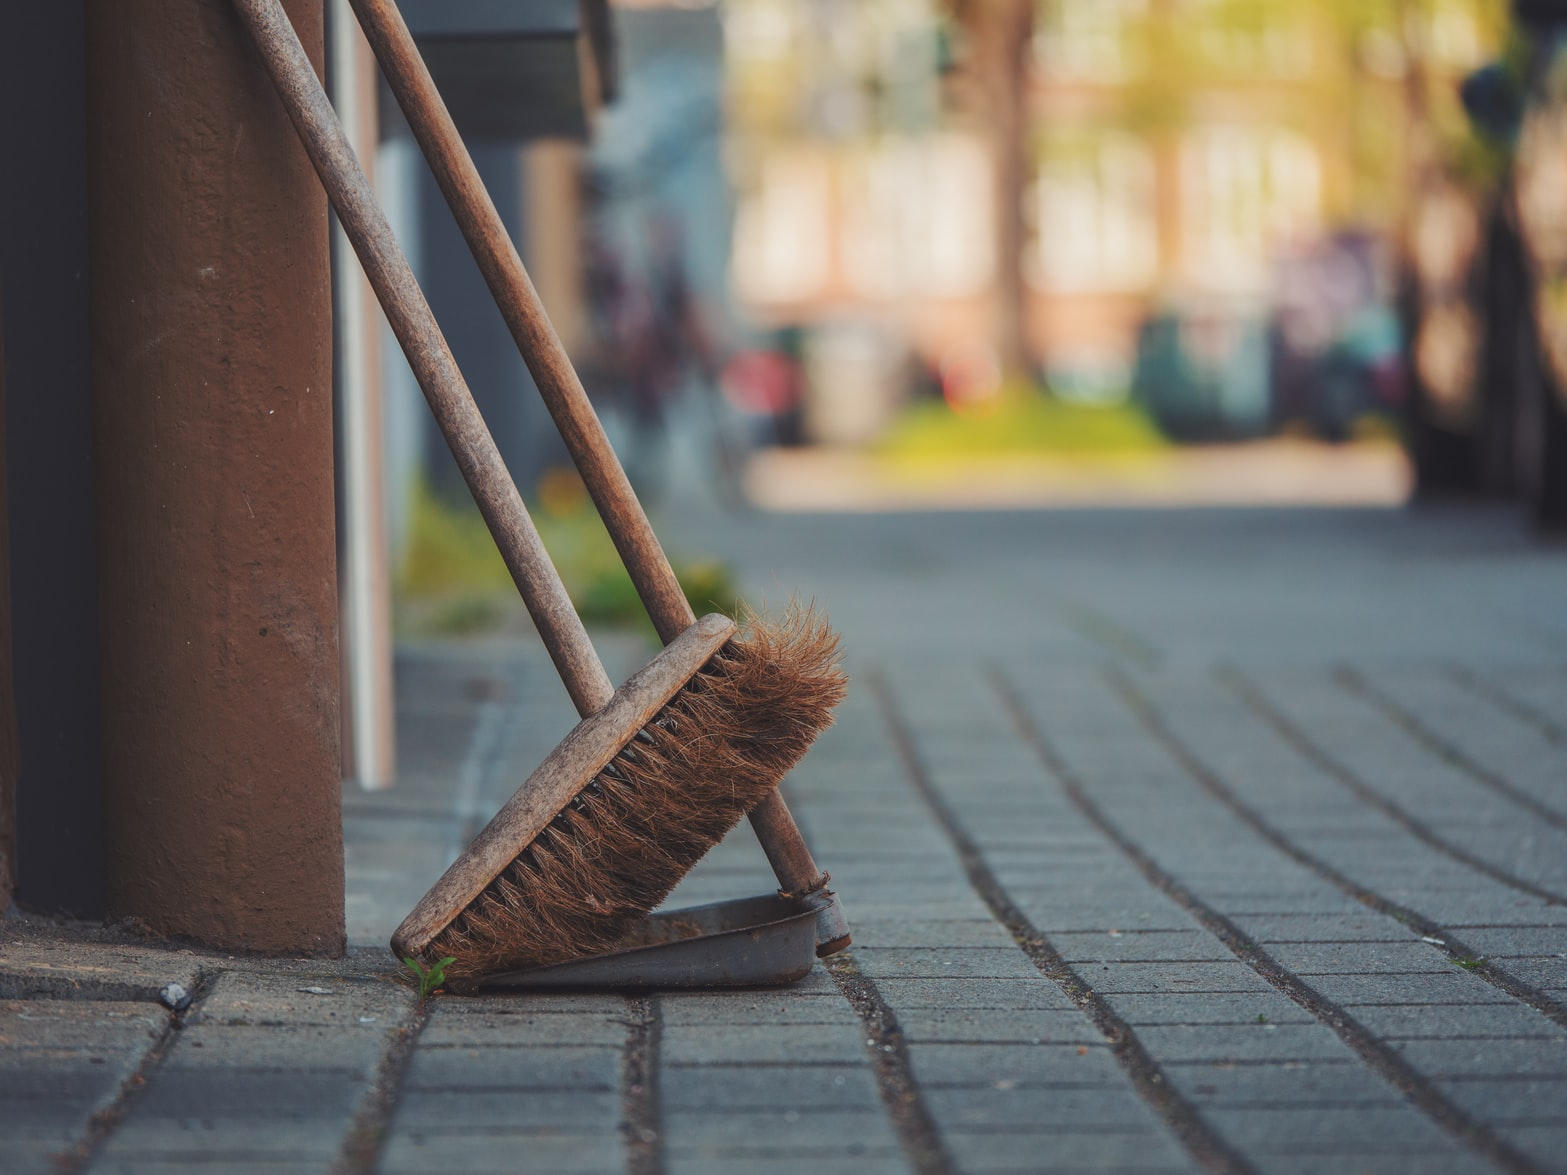 The 8 Best Brooms in 2021, According To Thousands Of Reviews